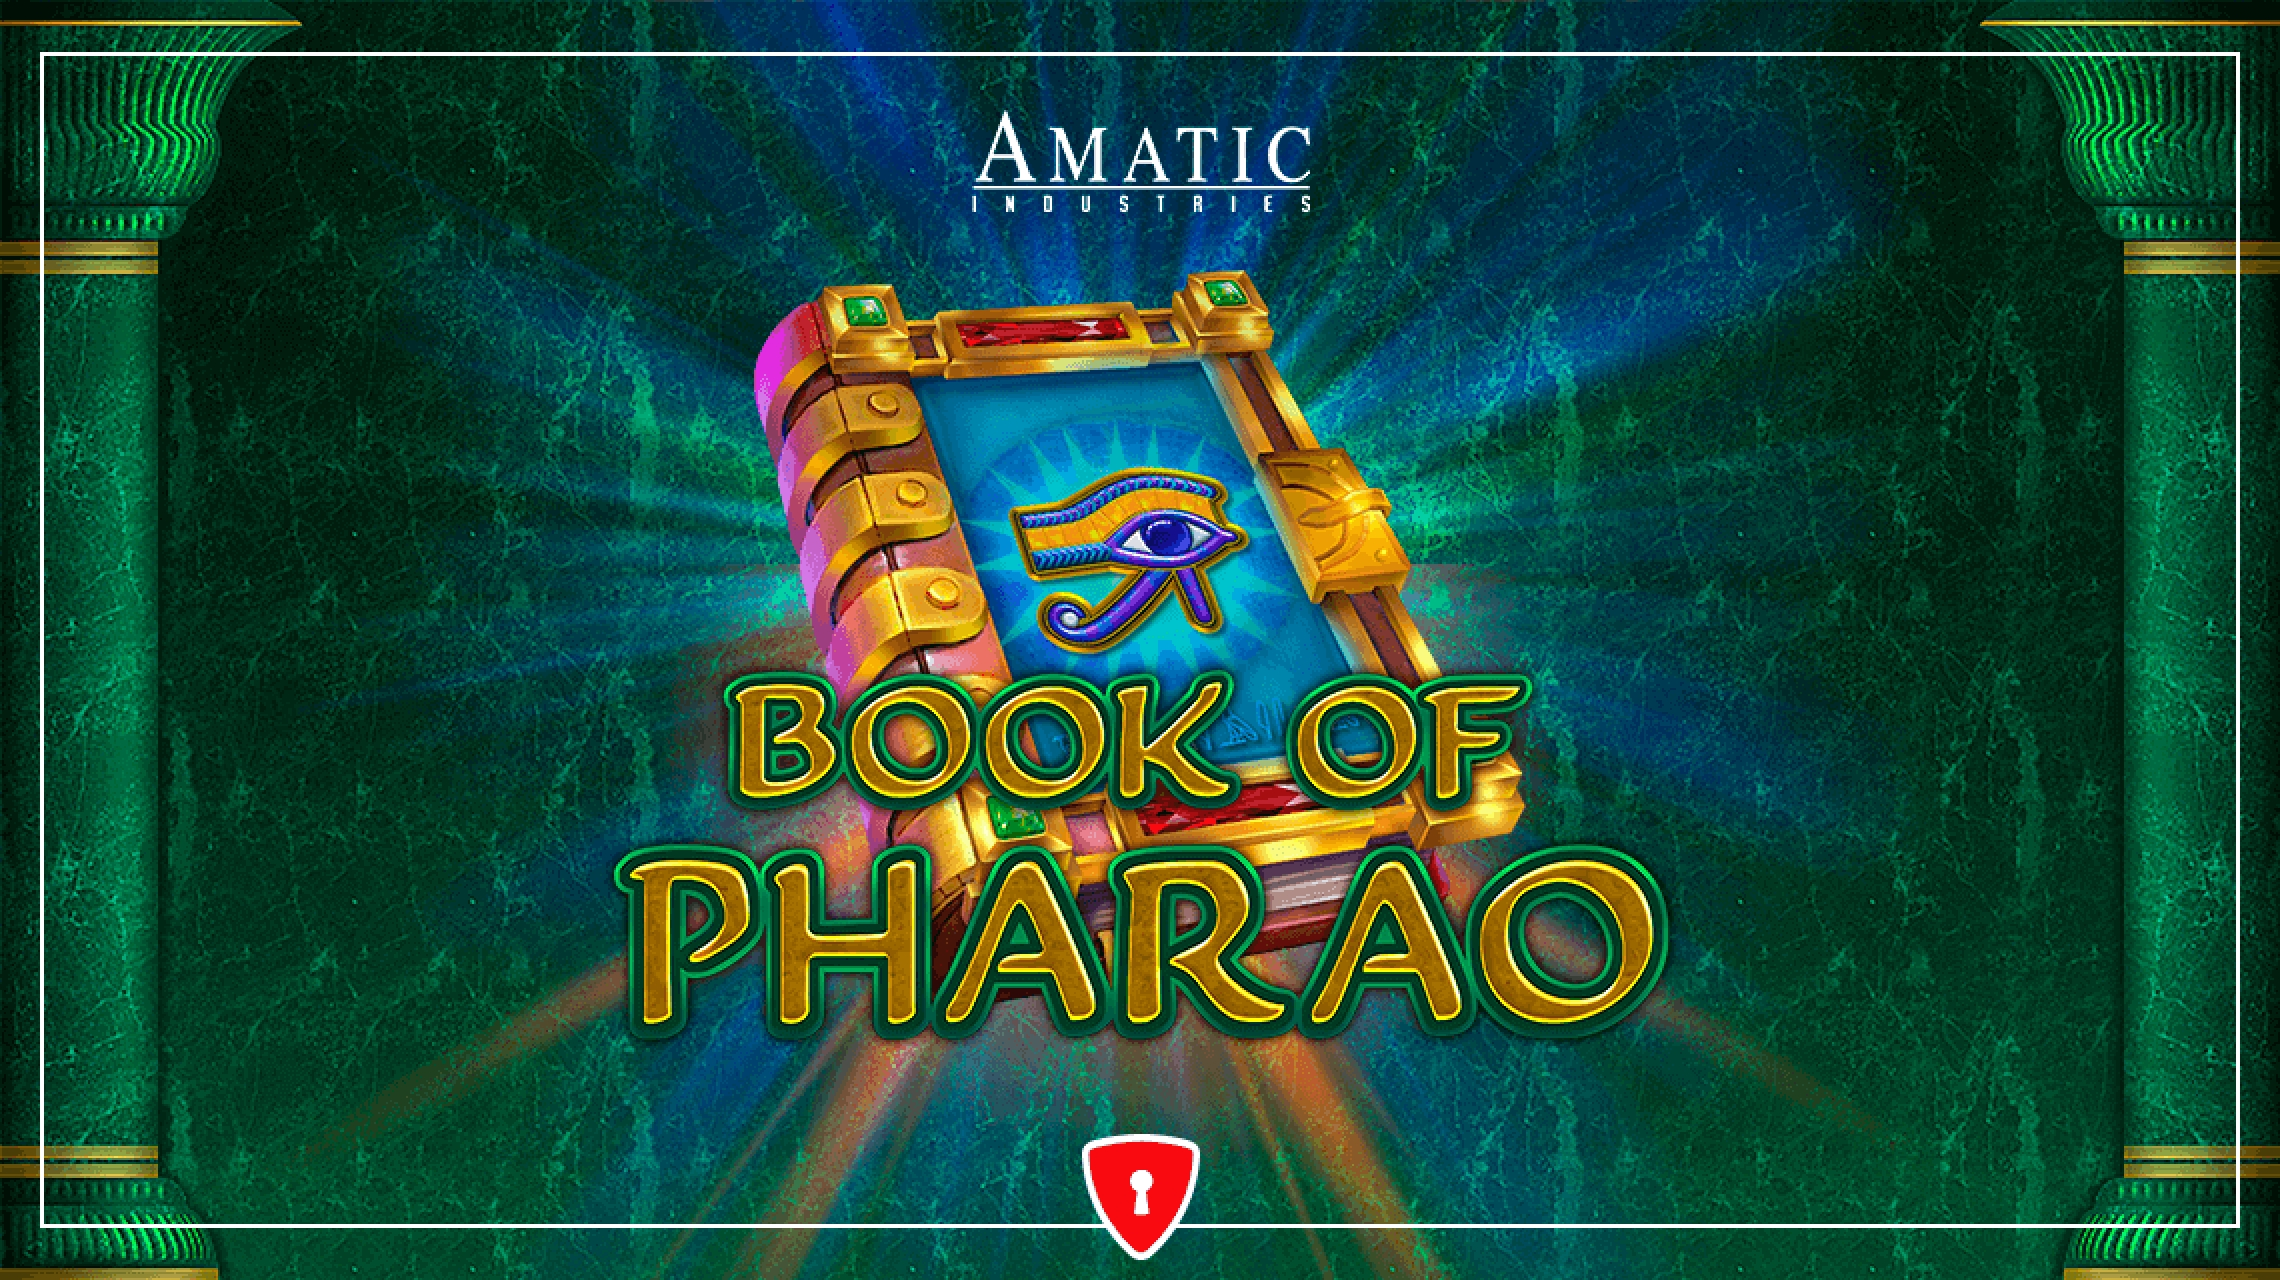 The Book of Pharao Online Slot Demo Game by Amatic Industries